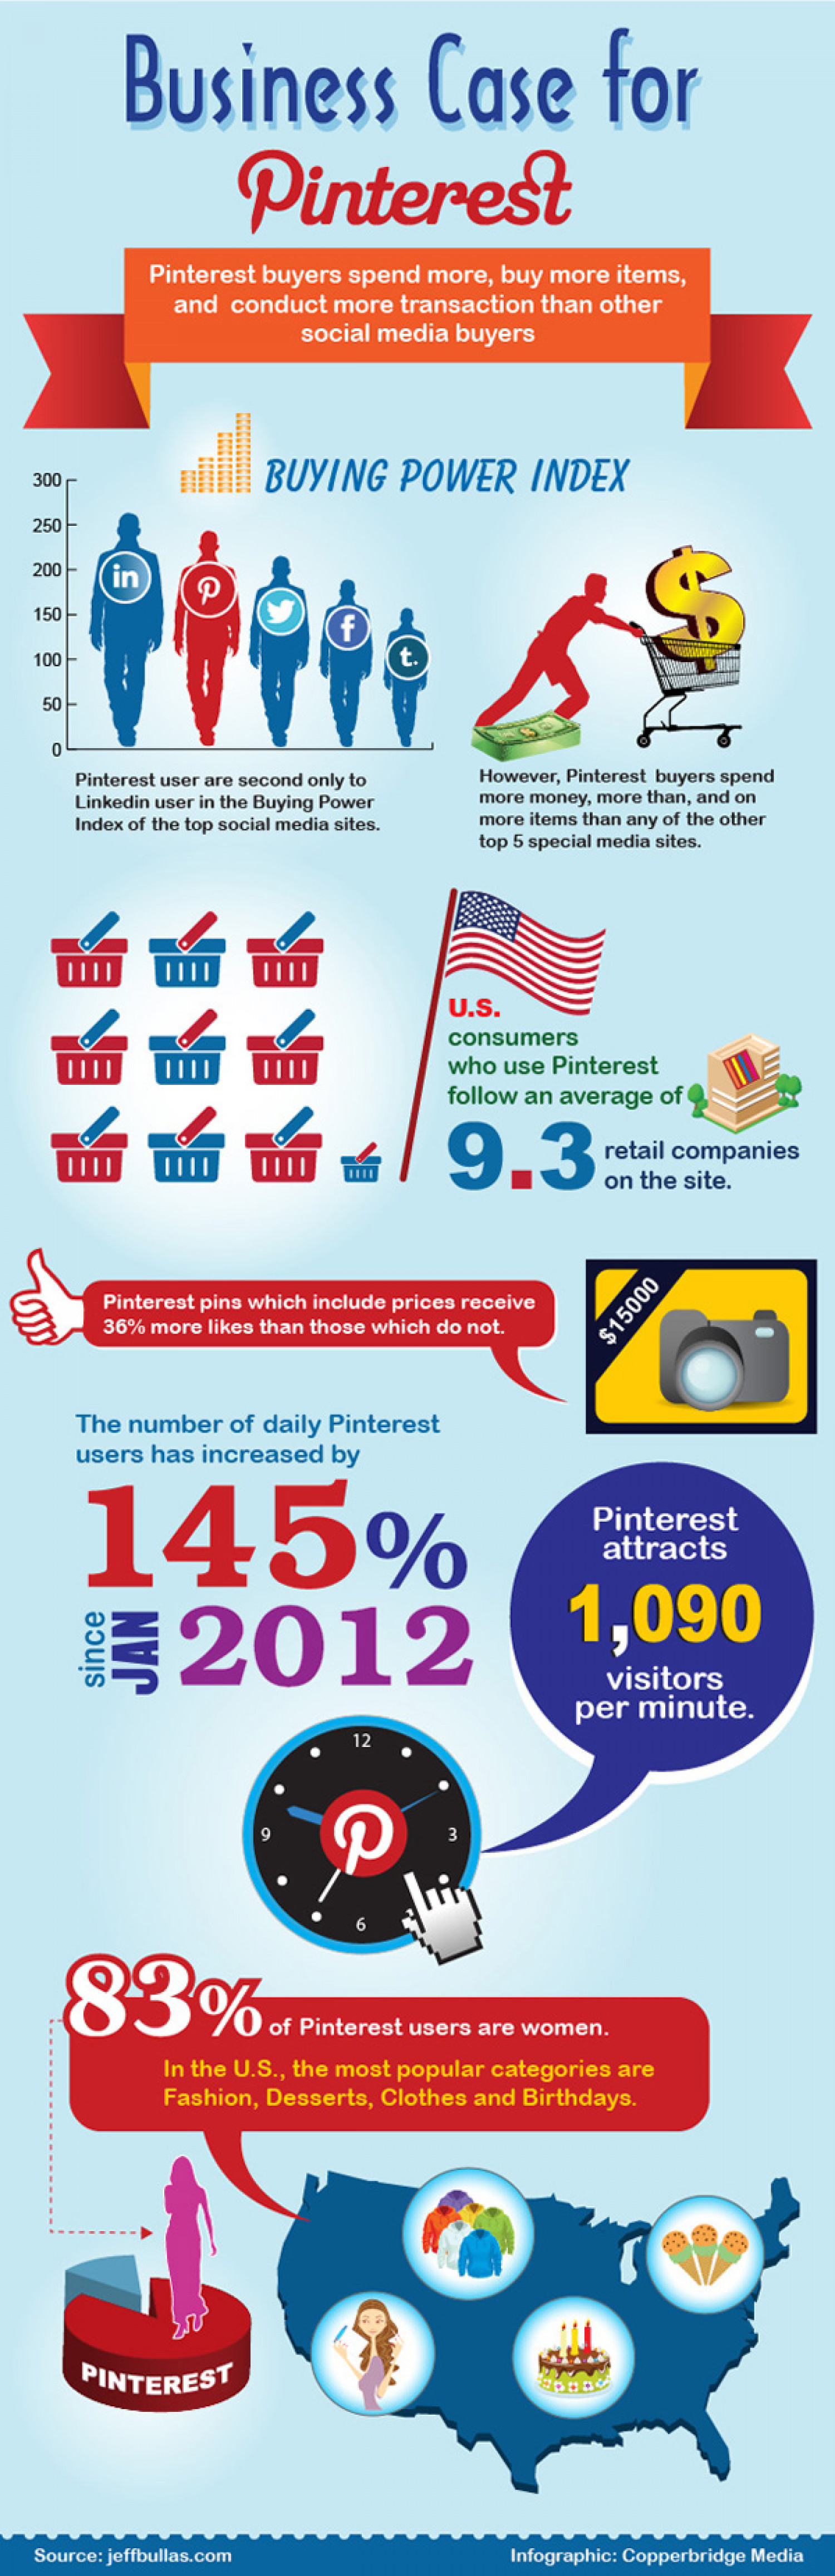 Business case for Pinterest: Fact or fluff? Infographic